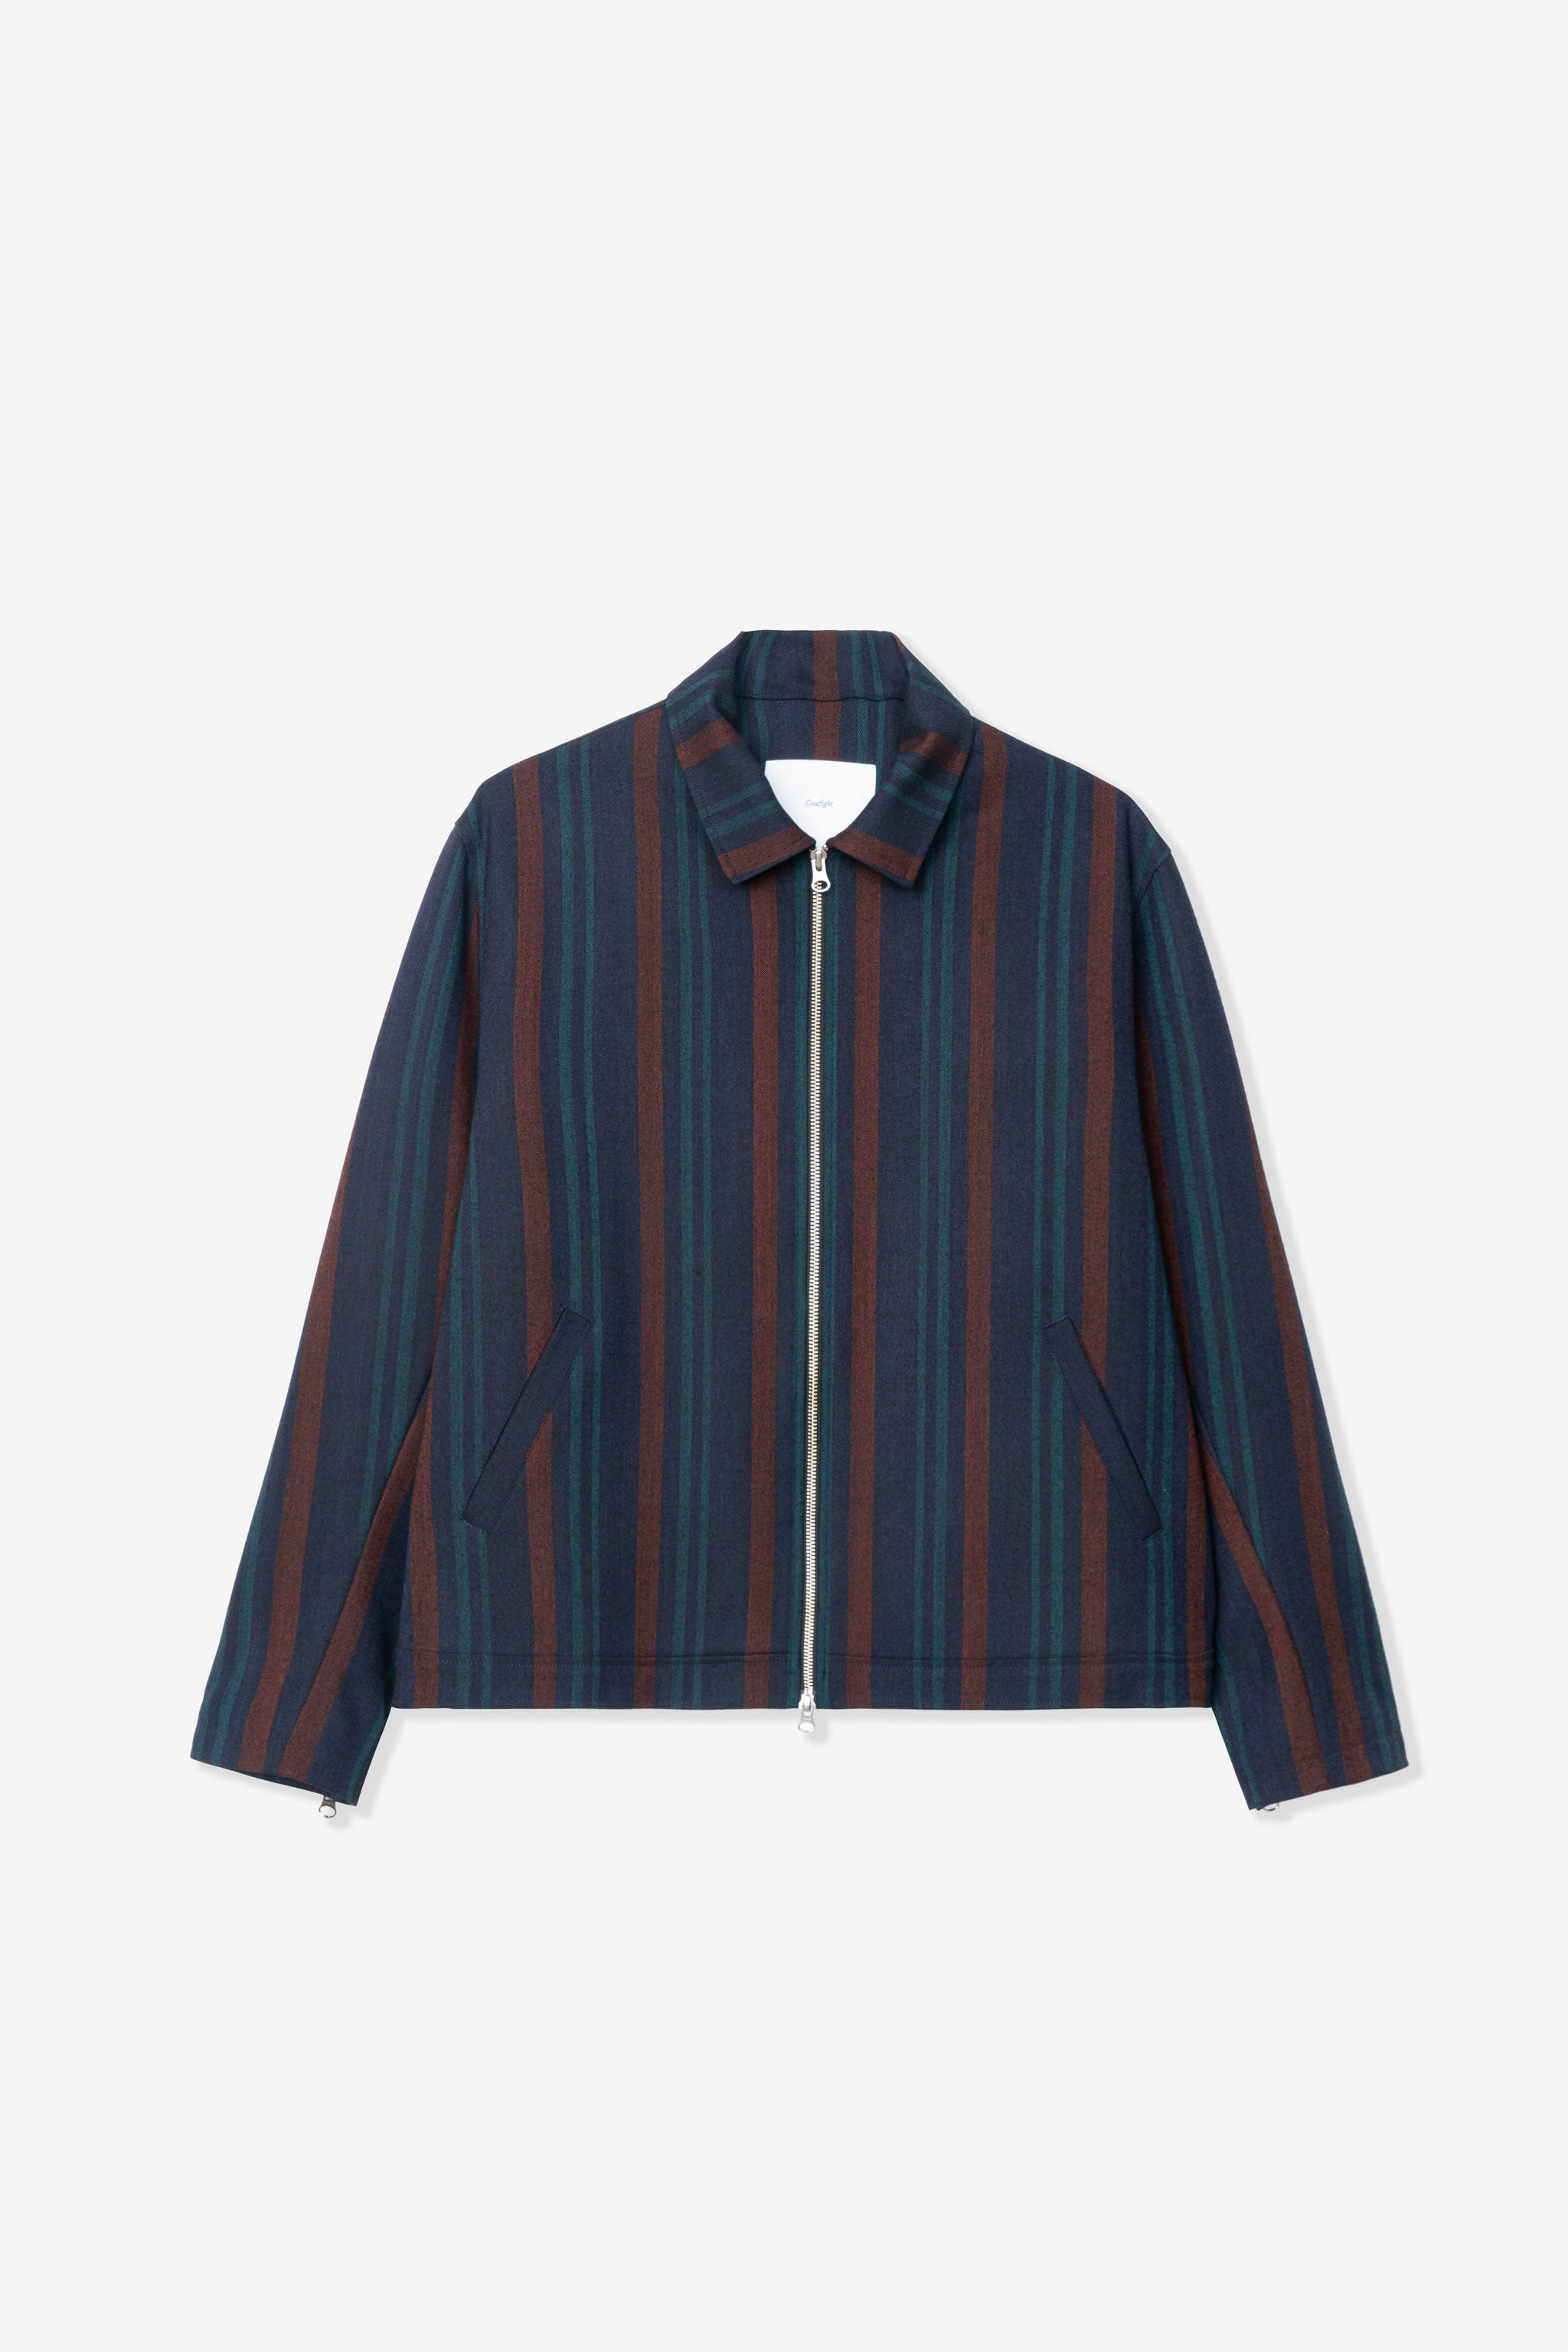 Goodfight FTW Jacket Blue Stripe